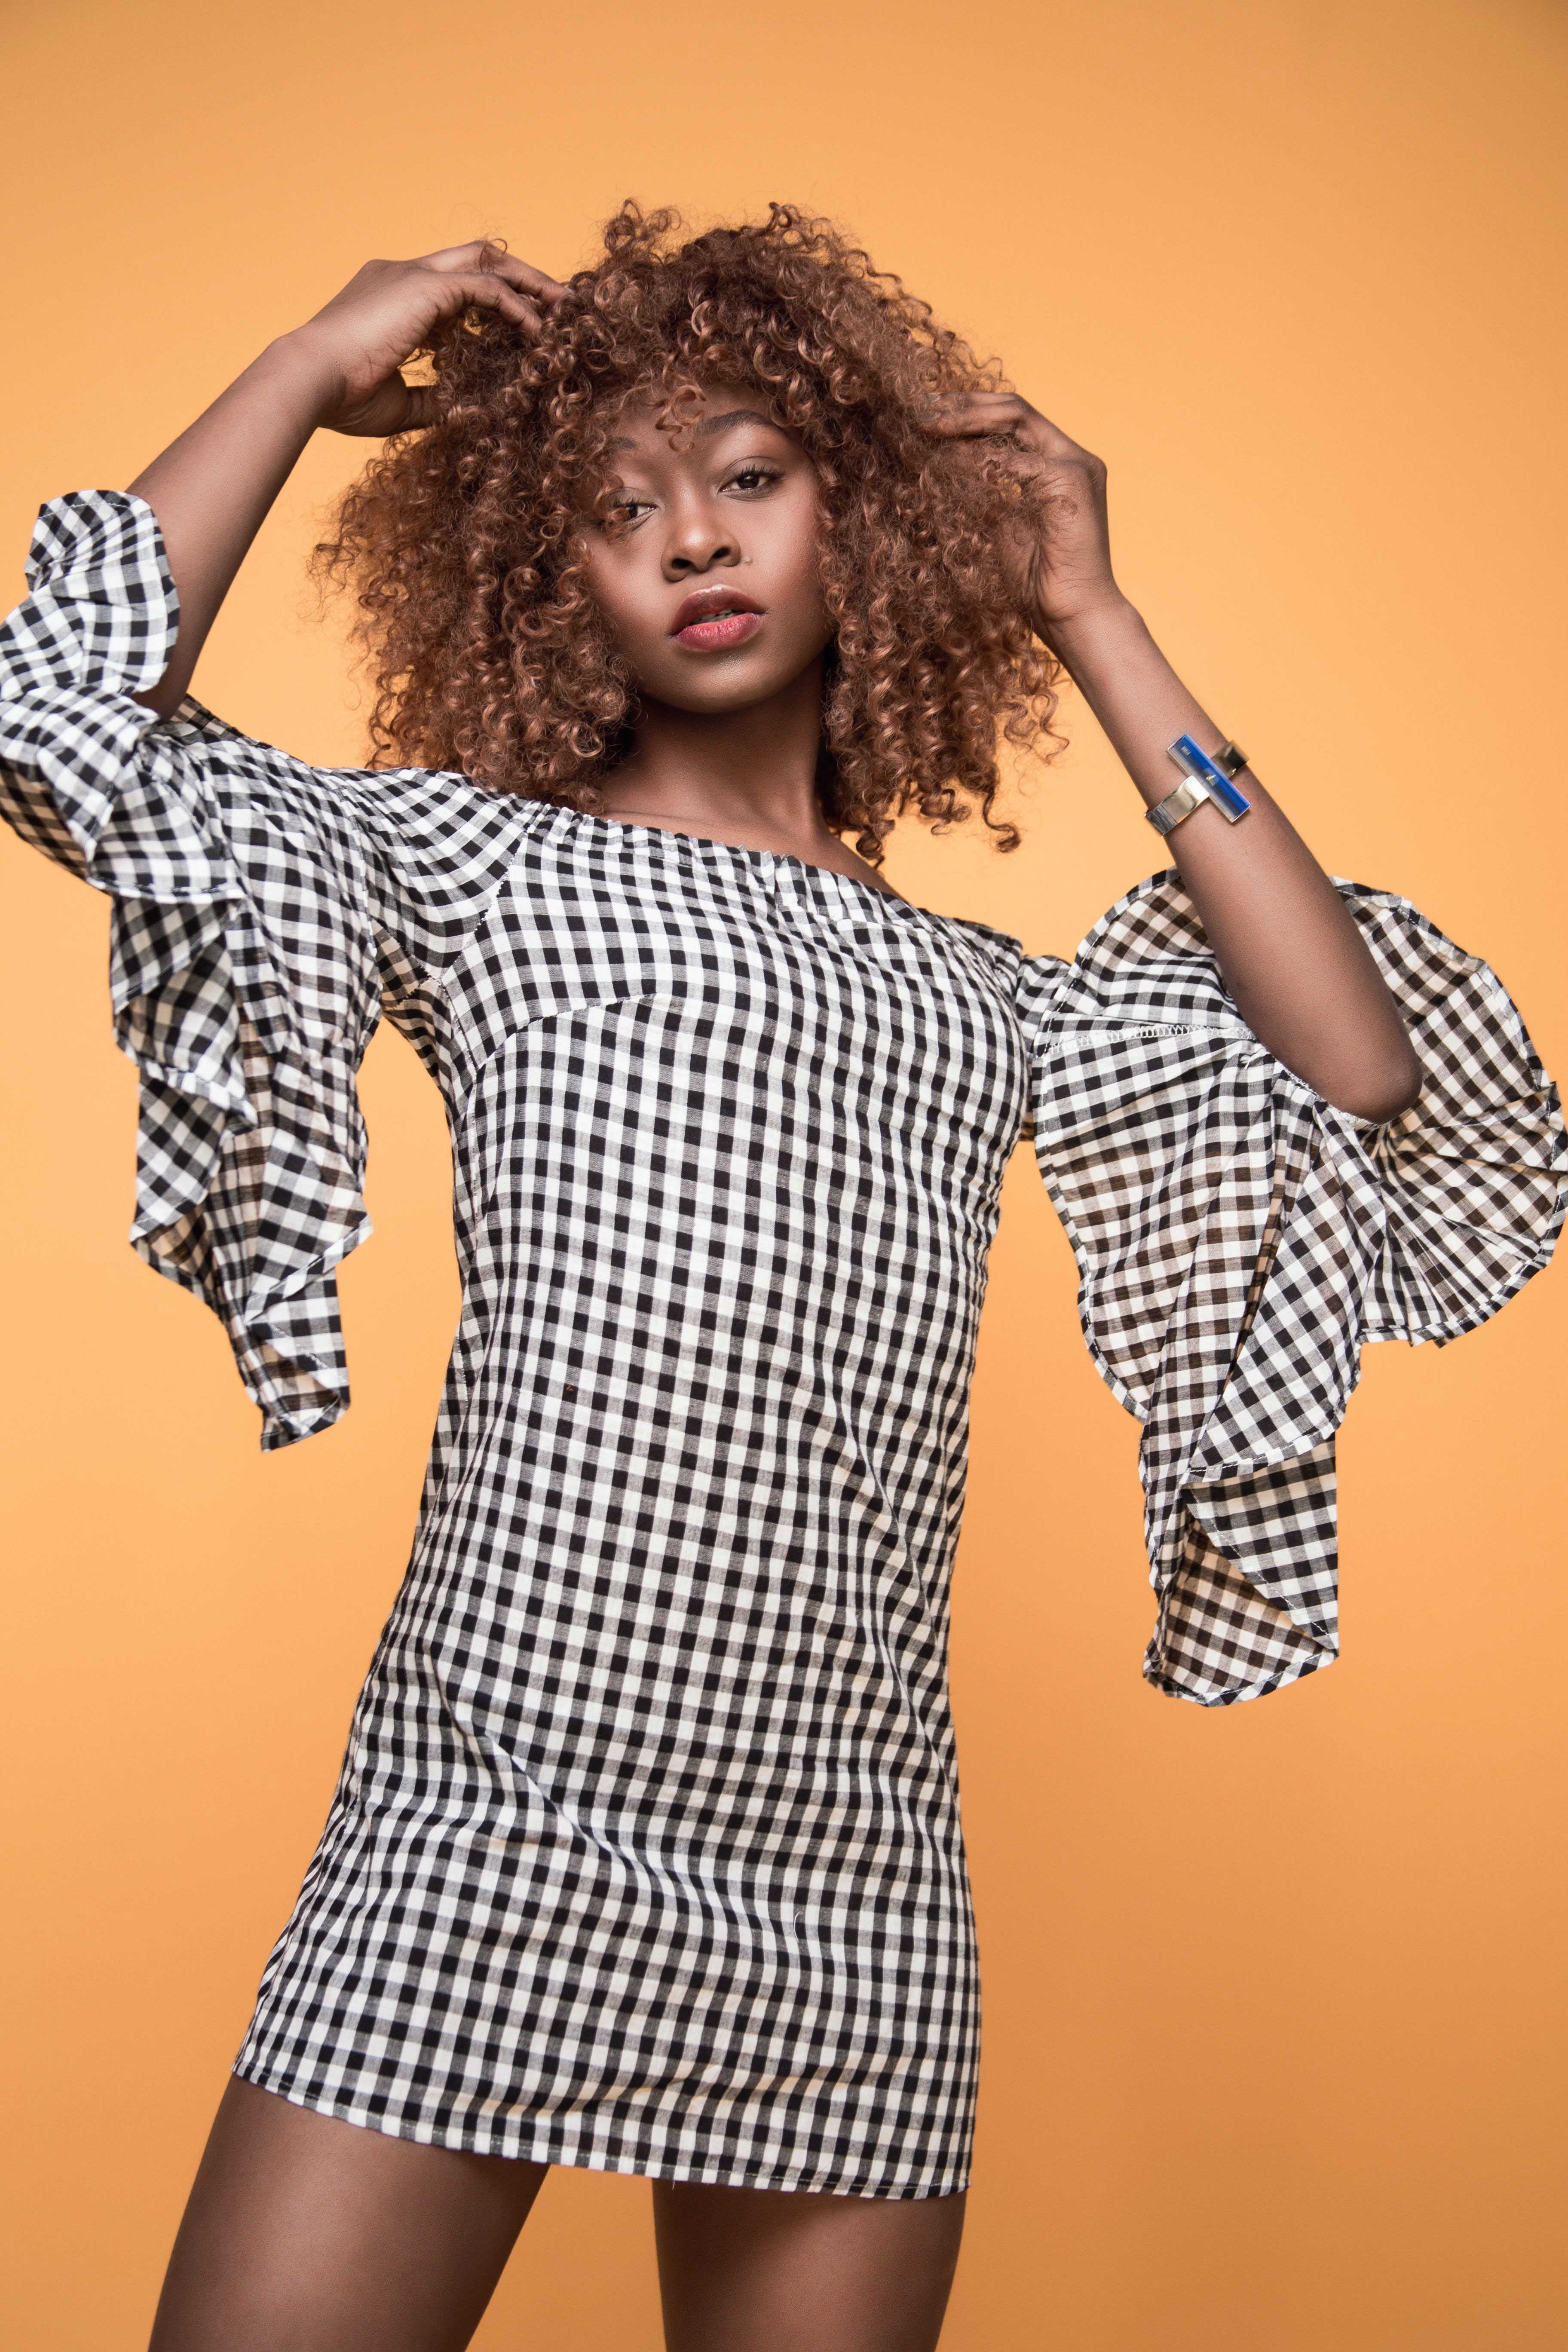 Woman Wearing White and Black Checkered 3/4 Sleeved Shirt